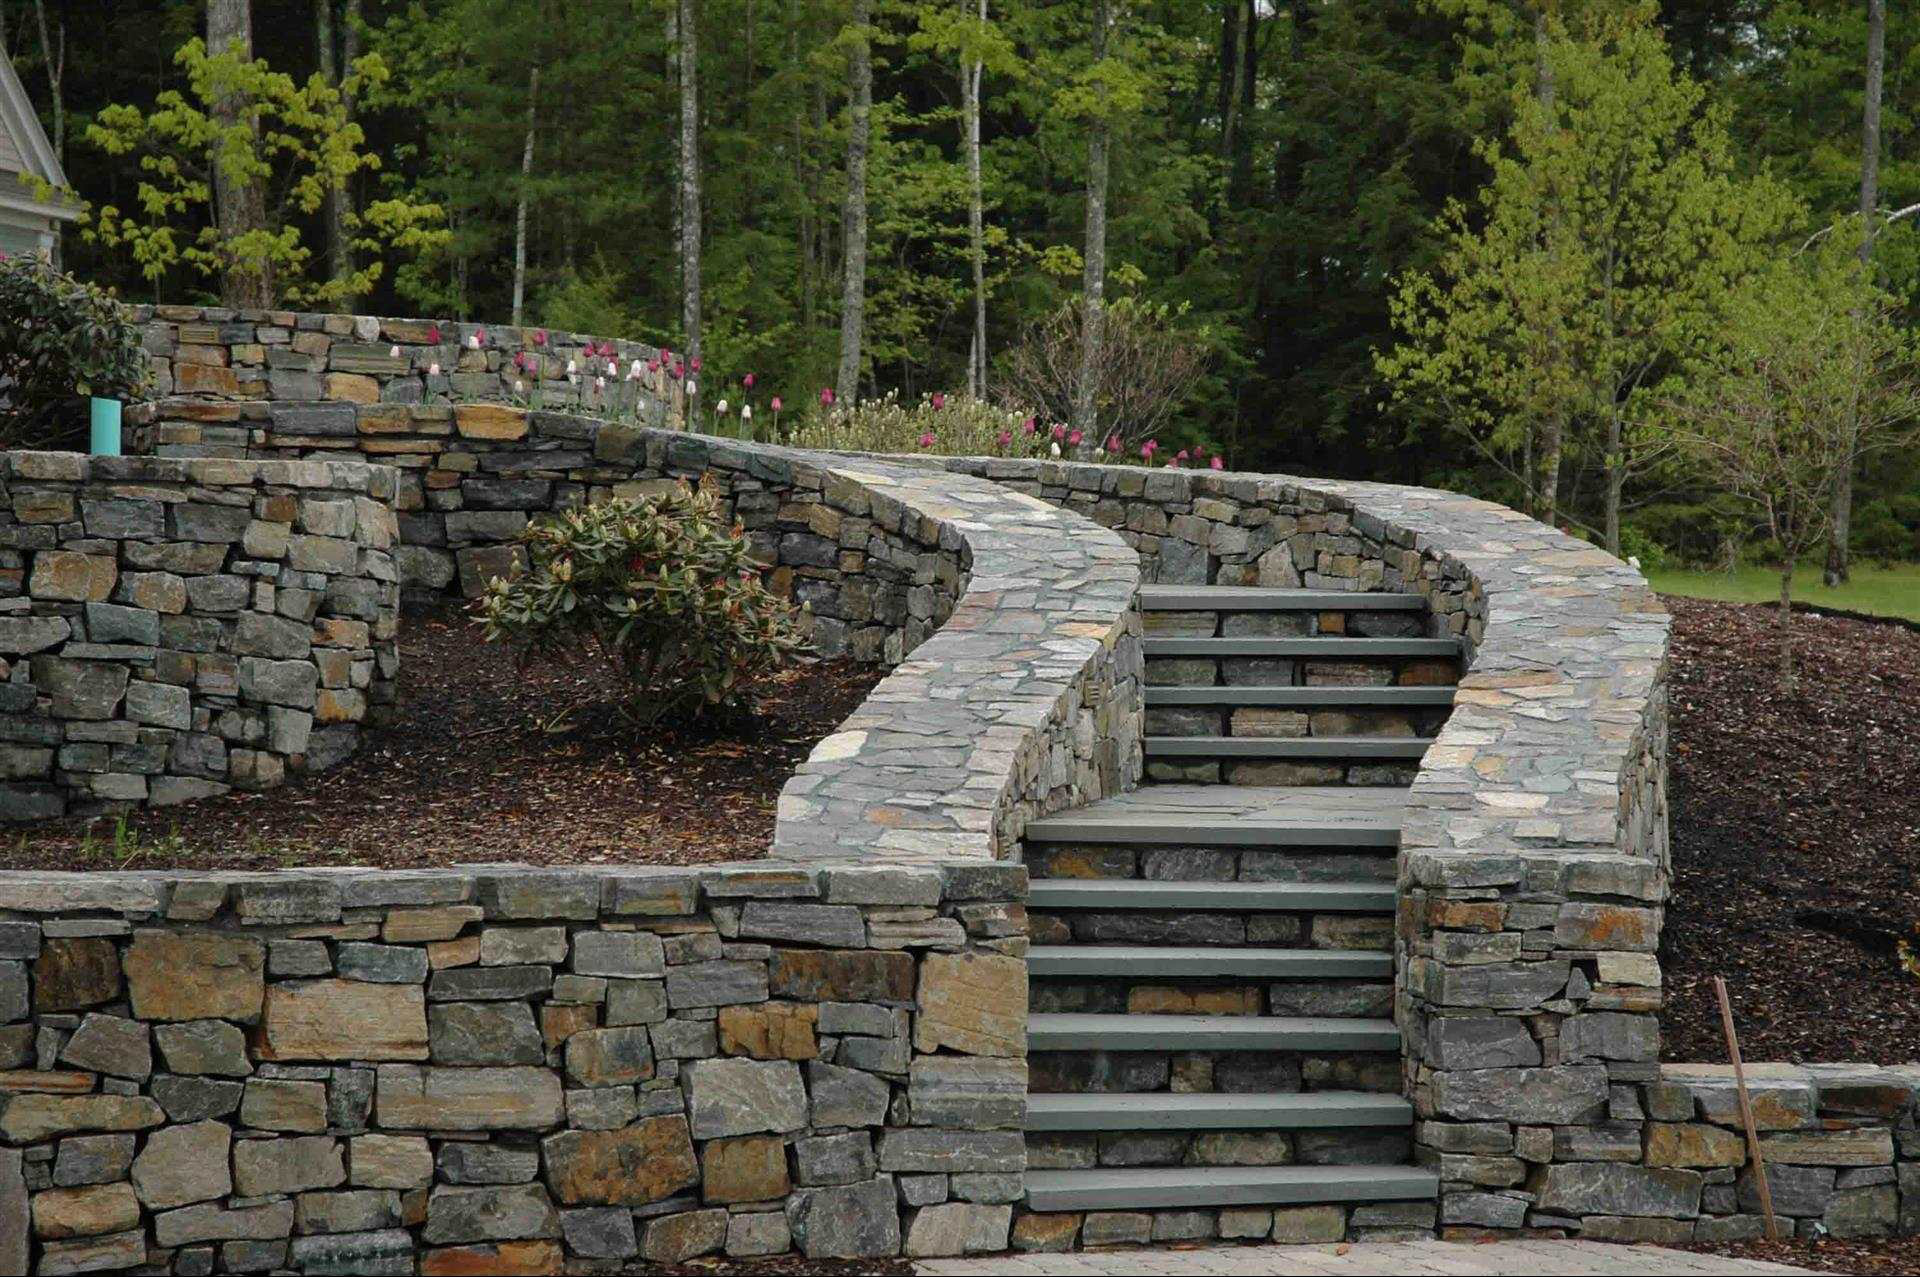 Landscaping Natural Stone : Outdoor living increases interest in pavers hardscaping